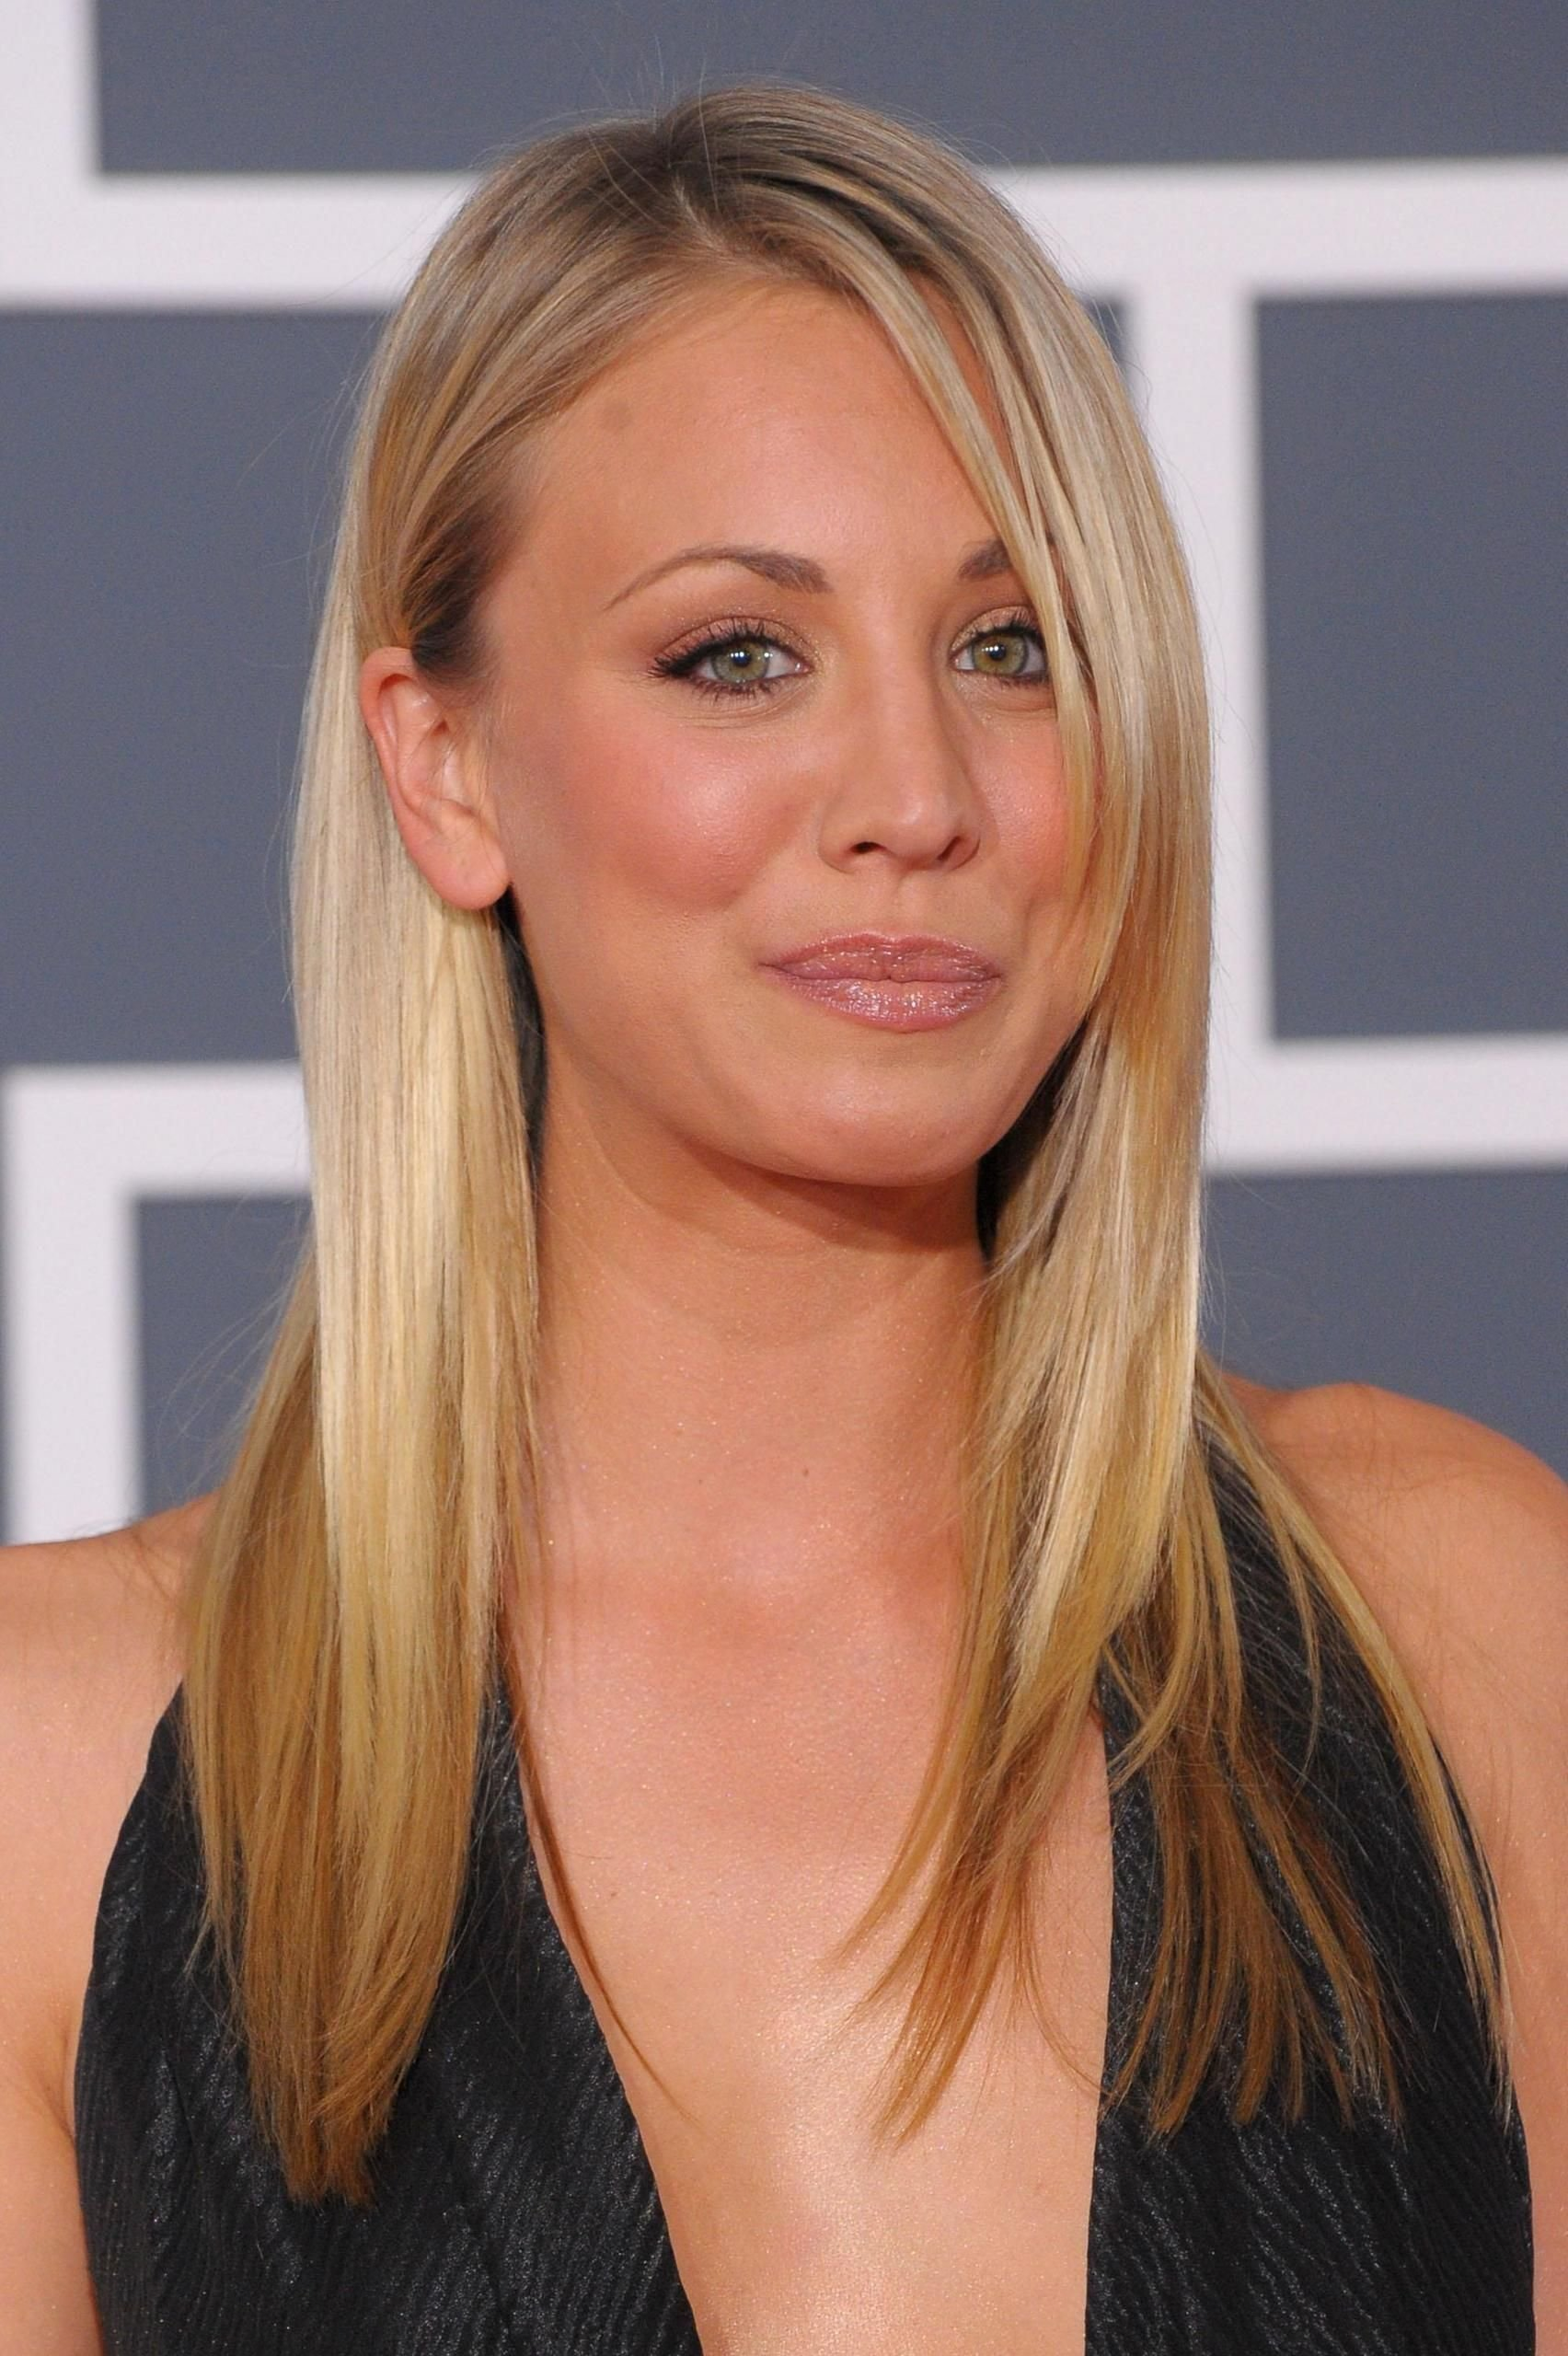 The Best The Big Bang Theory Kaley Cuoco Women From My Favorite Pictures